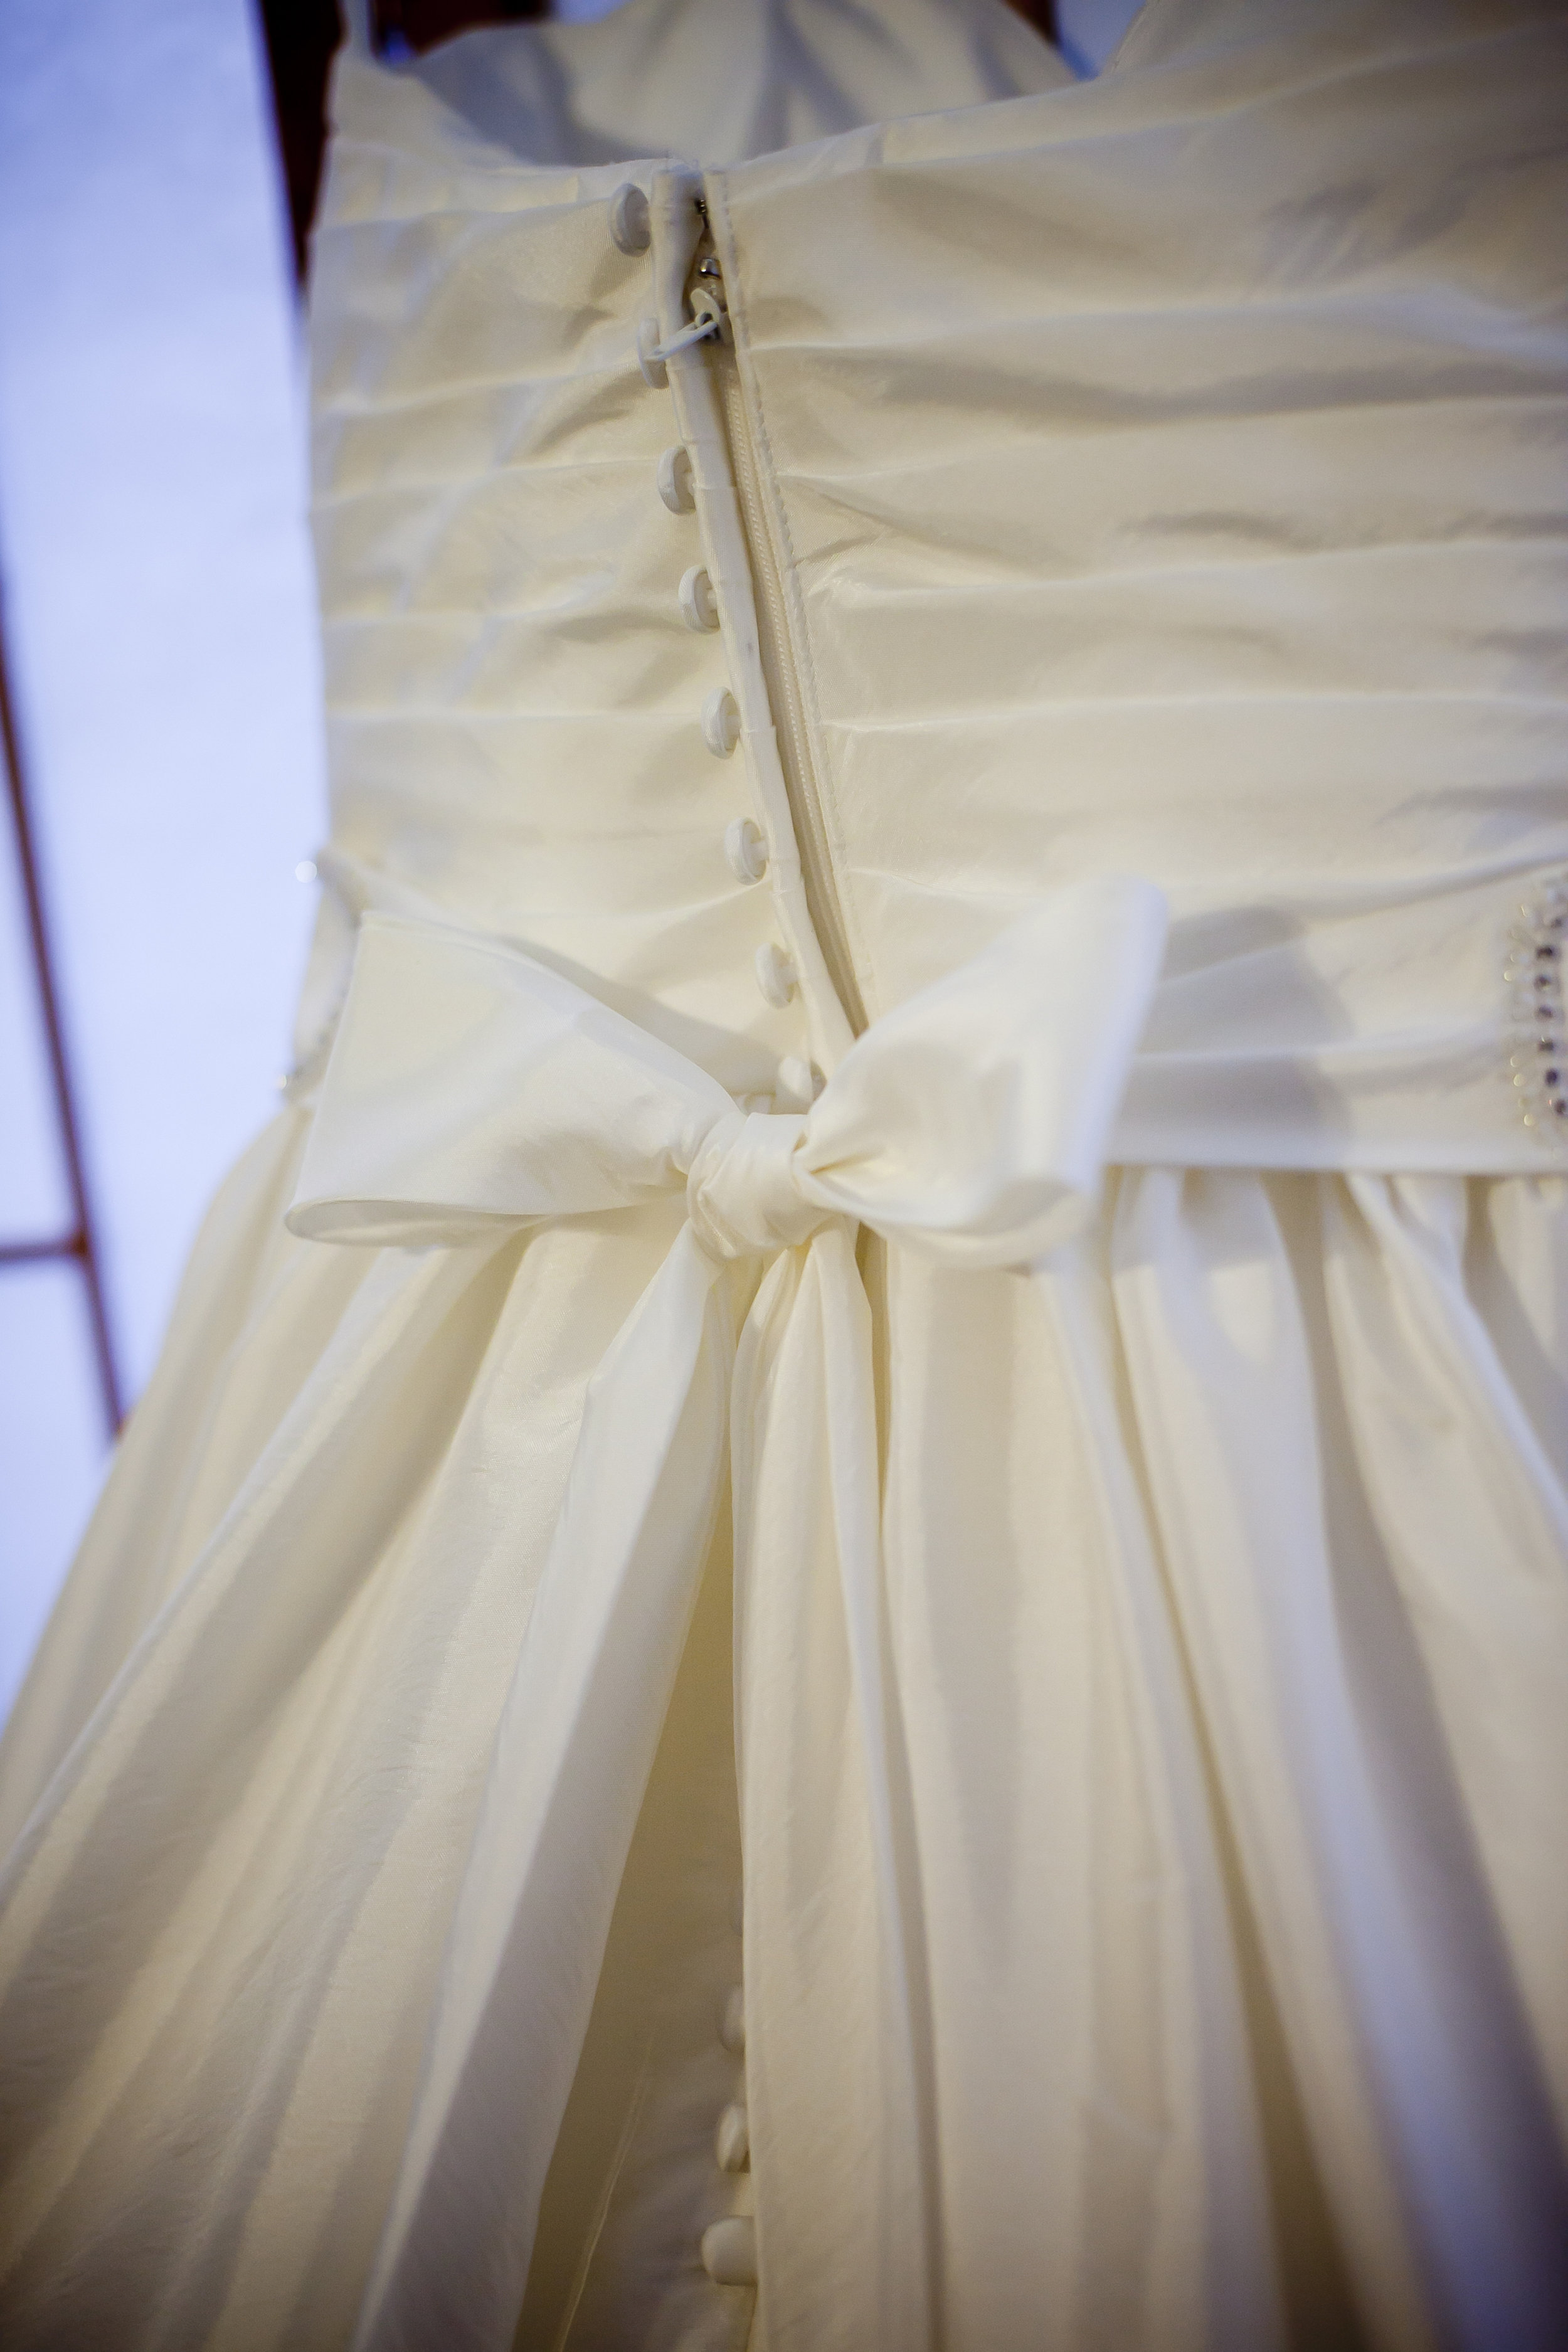 5 resources for donating your wedding dress. #decluttering #weddingdress #organizingtips